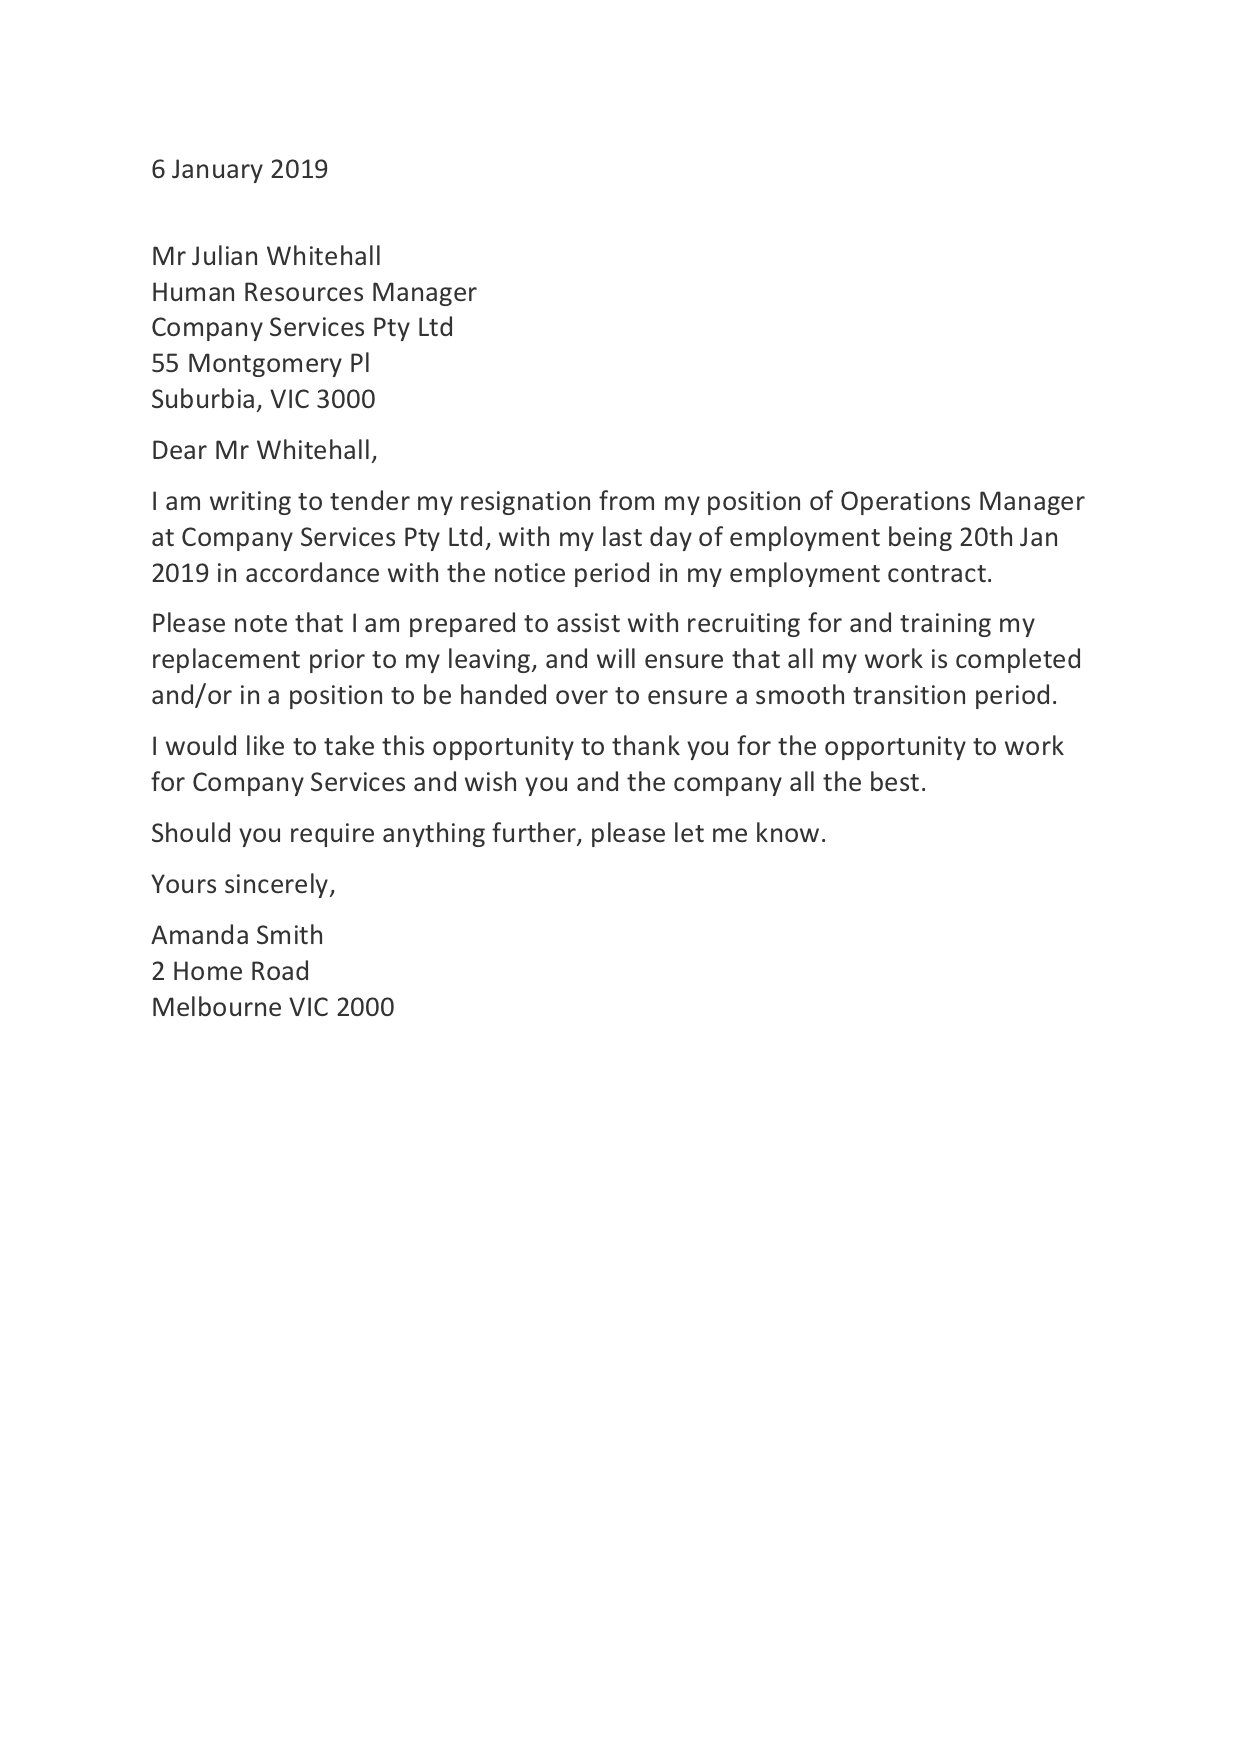 Professional Letter Of Resignation Template from www.training.com.au